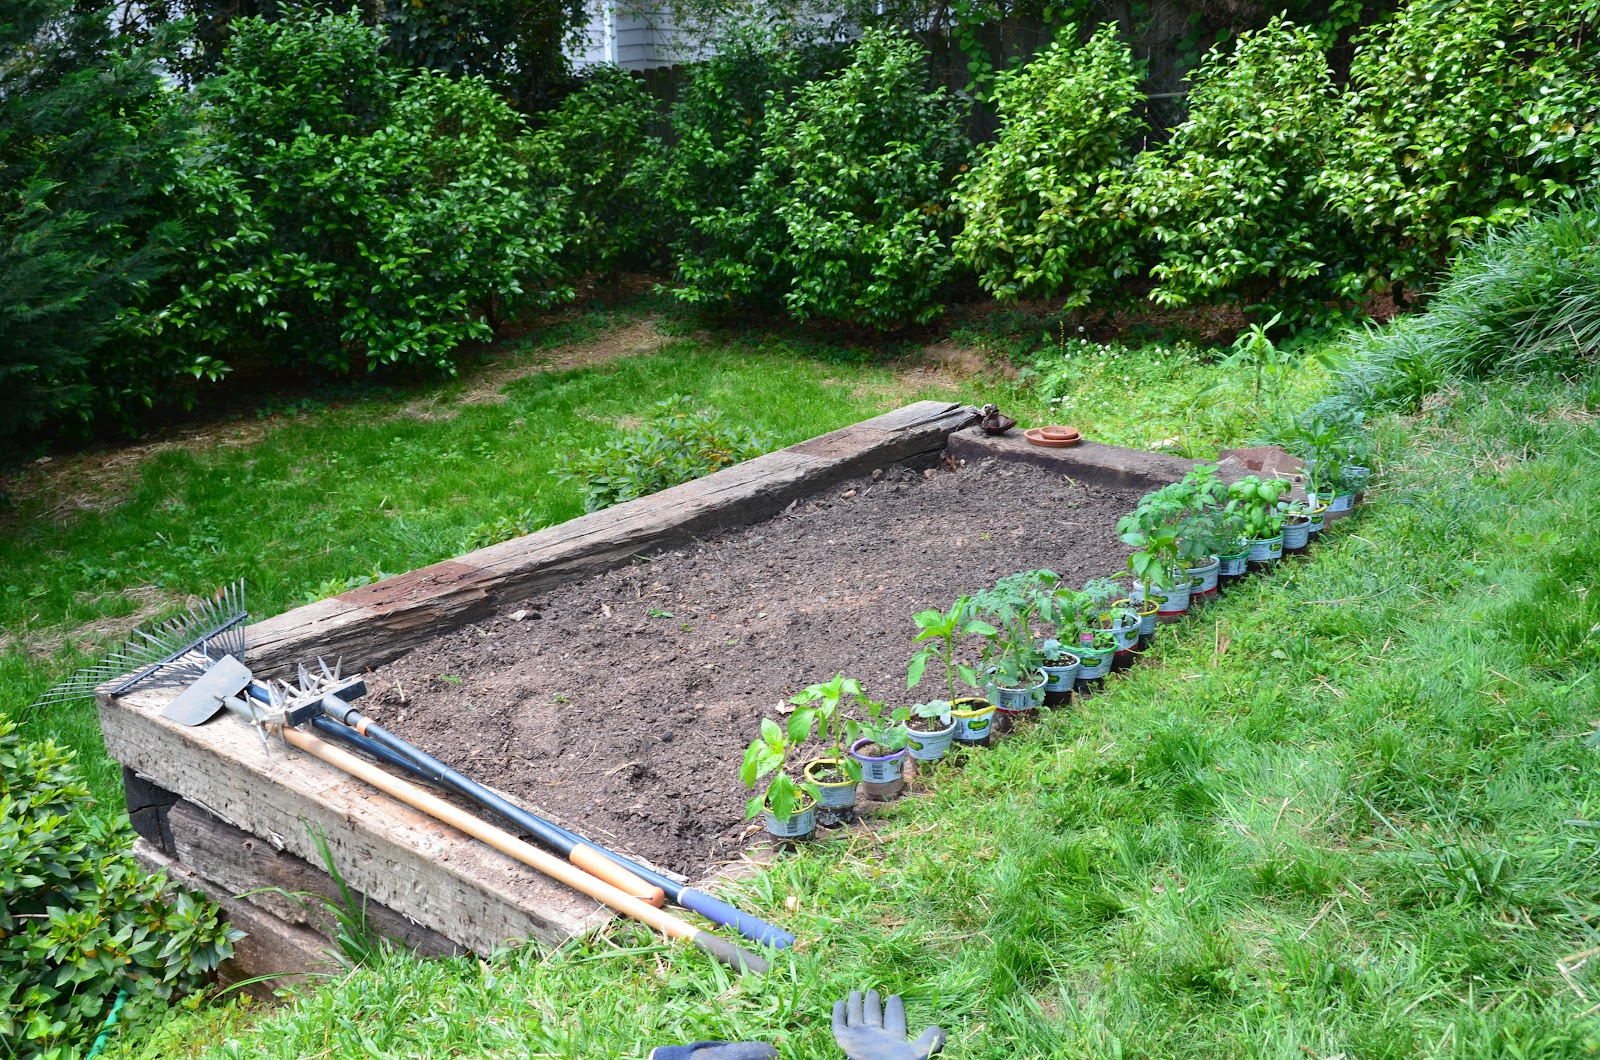 We built our railroad tie garden bed and planted a vegetable garden